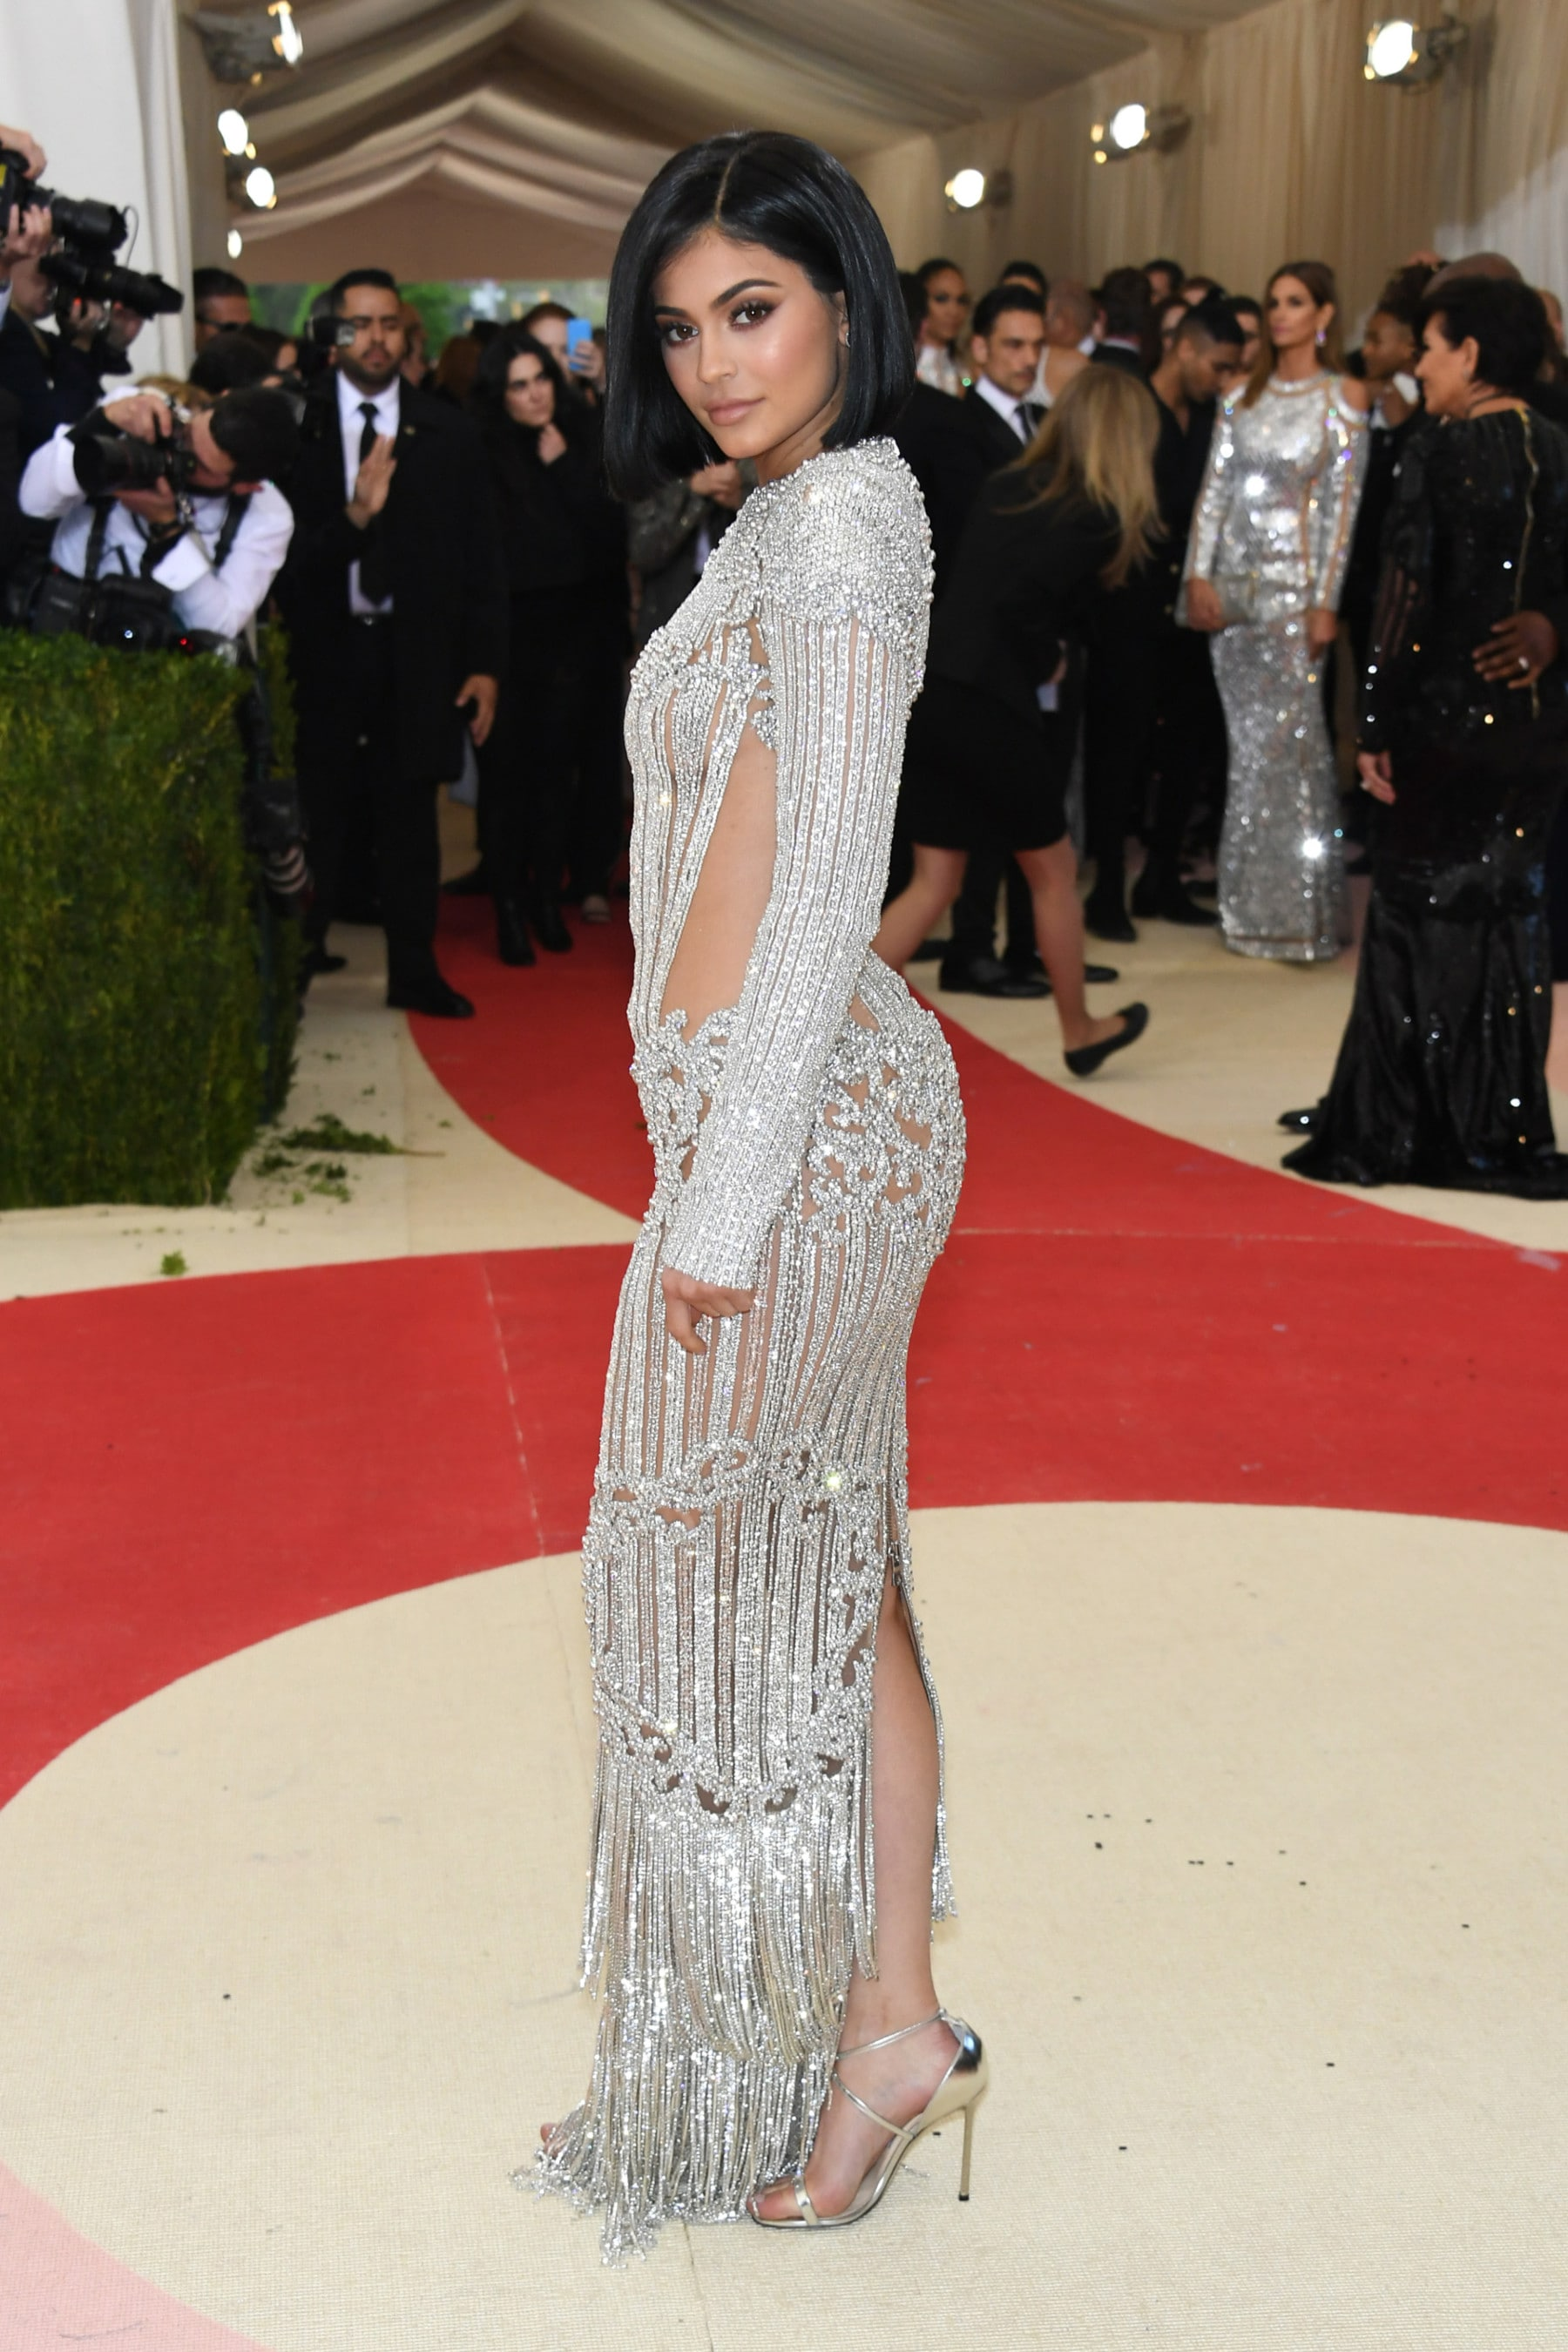 3475404cfc7 Kylie Jenner was nervous to attend her first Met Gala - Vogue Australia